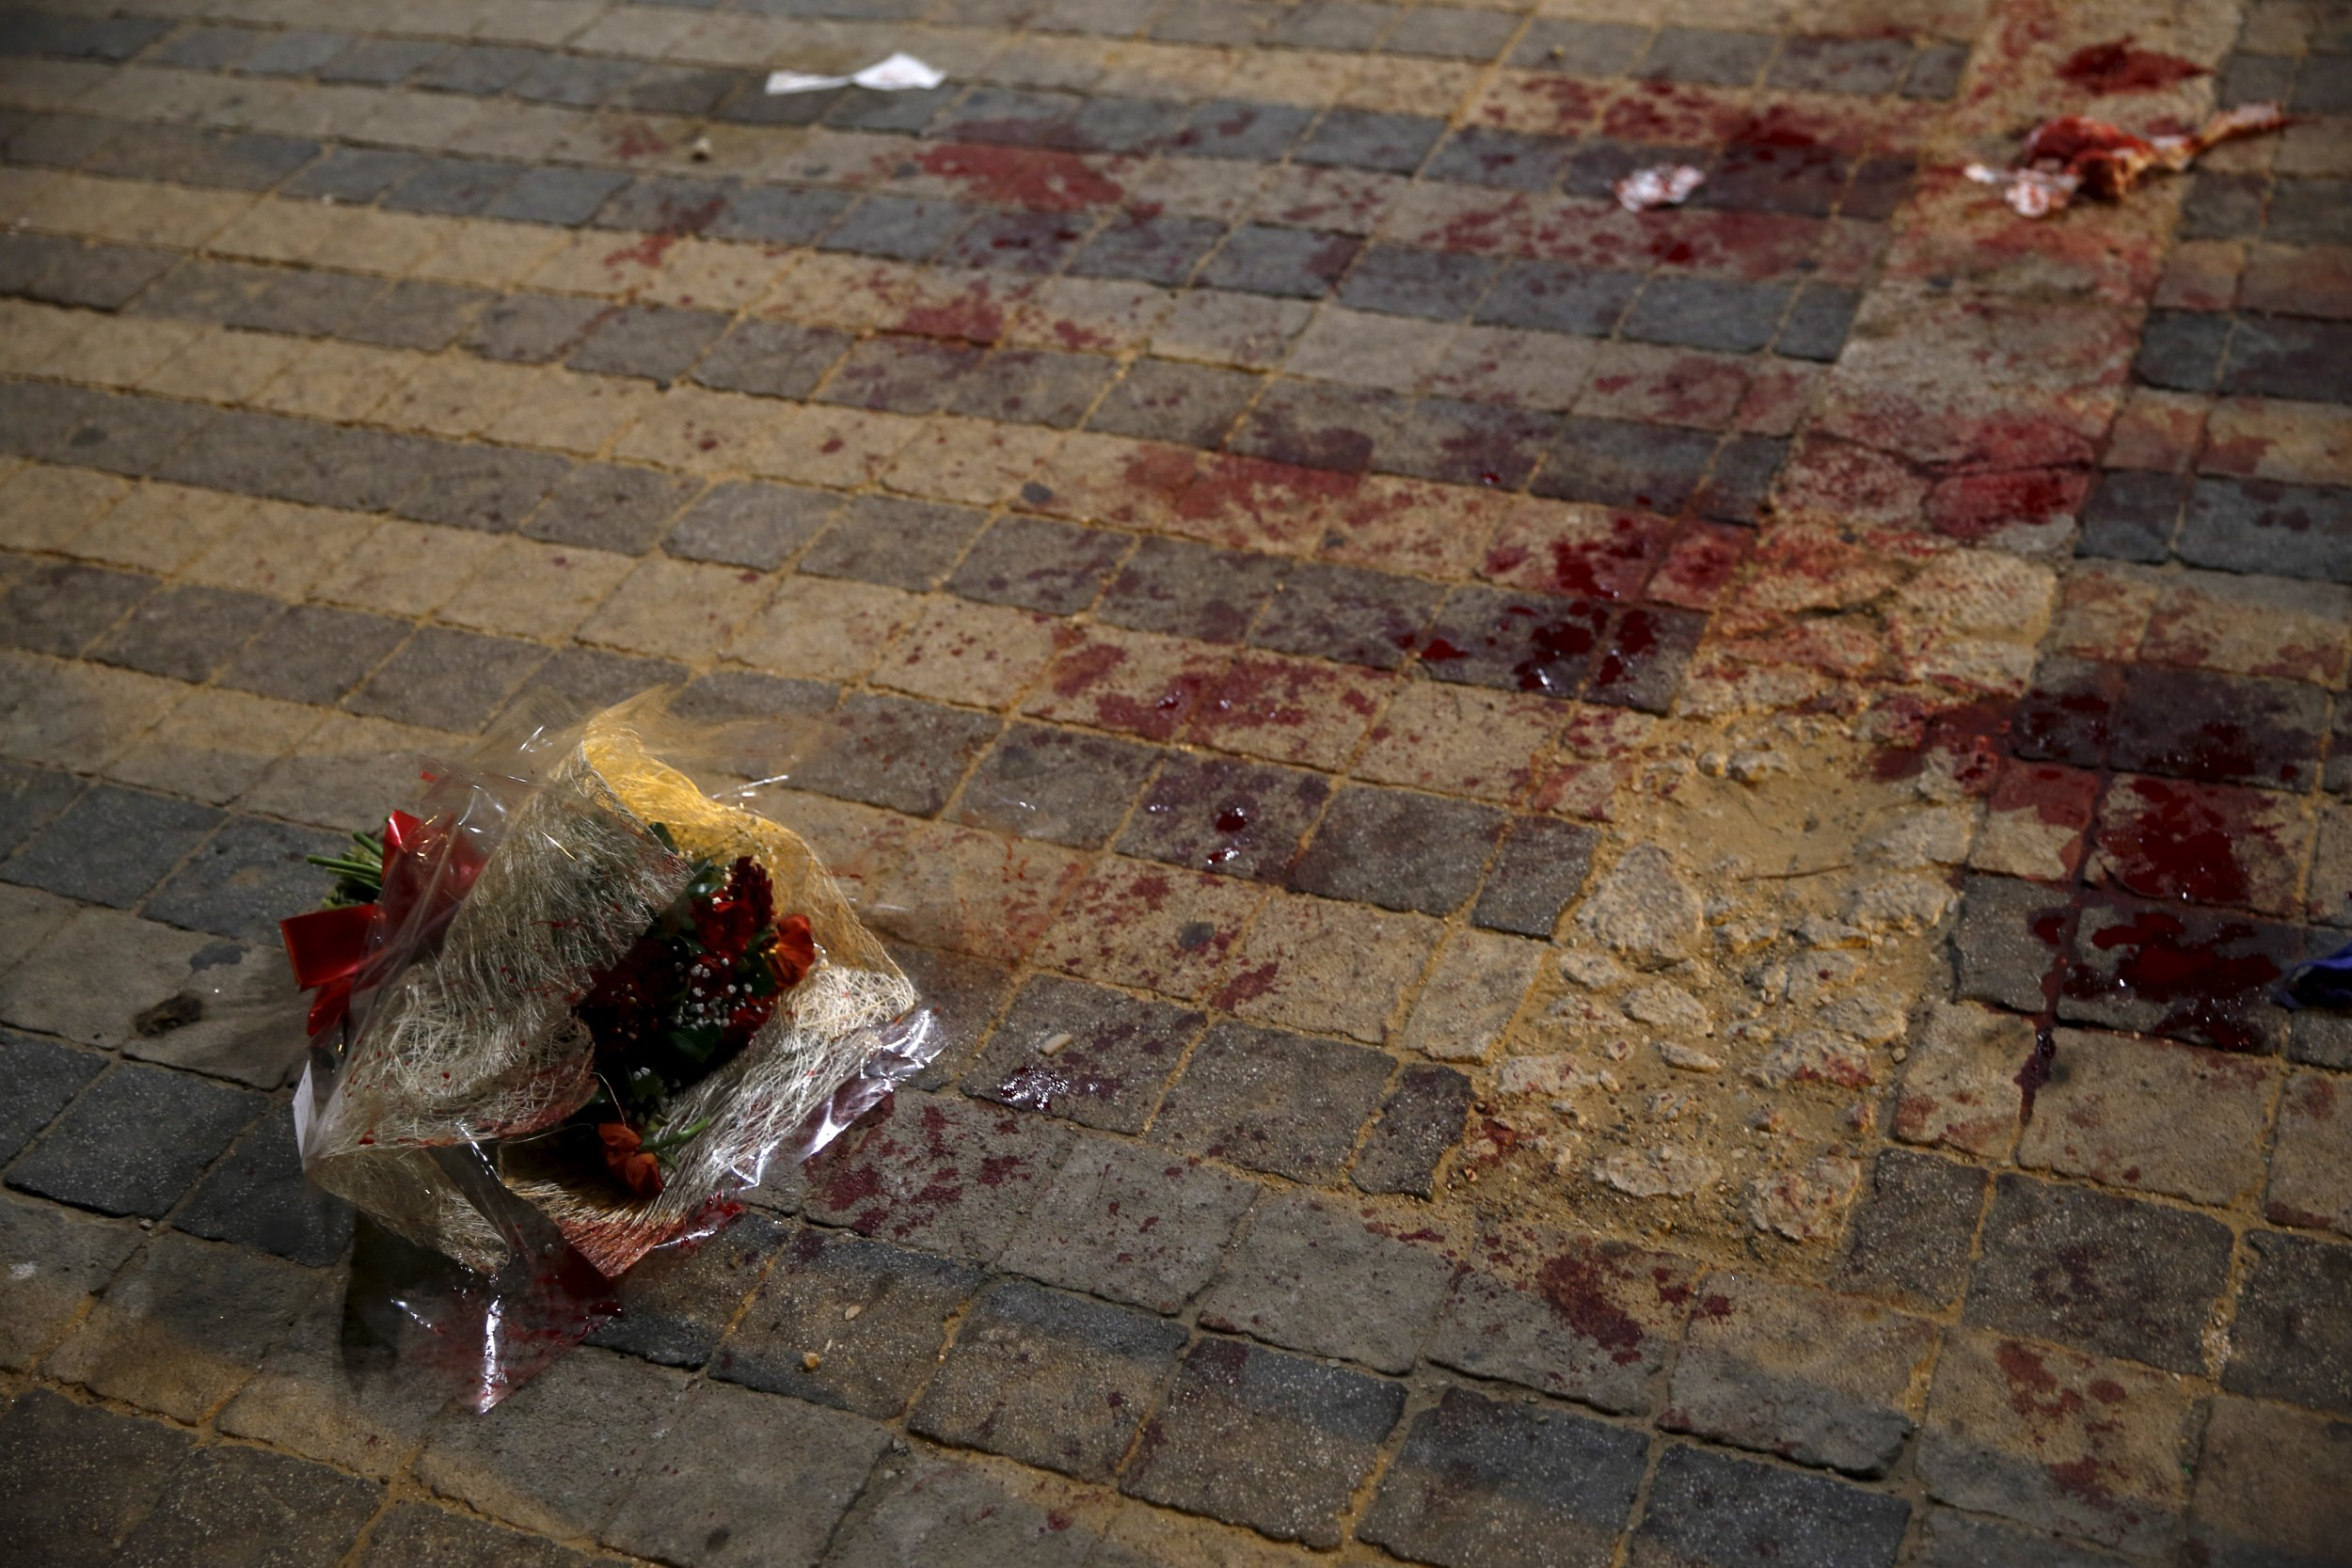 Israel Palestinians Middle East Stabbing Shooting